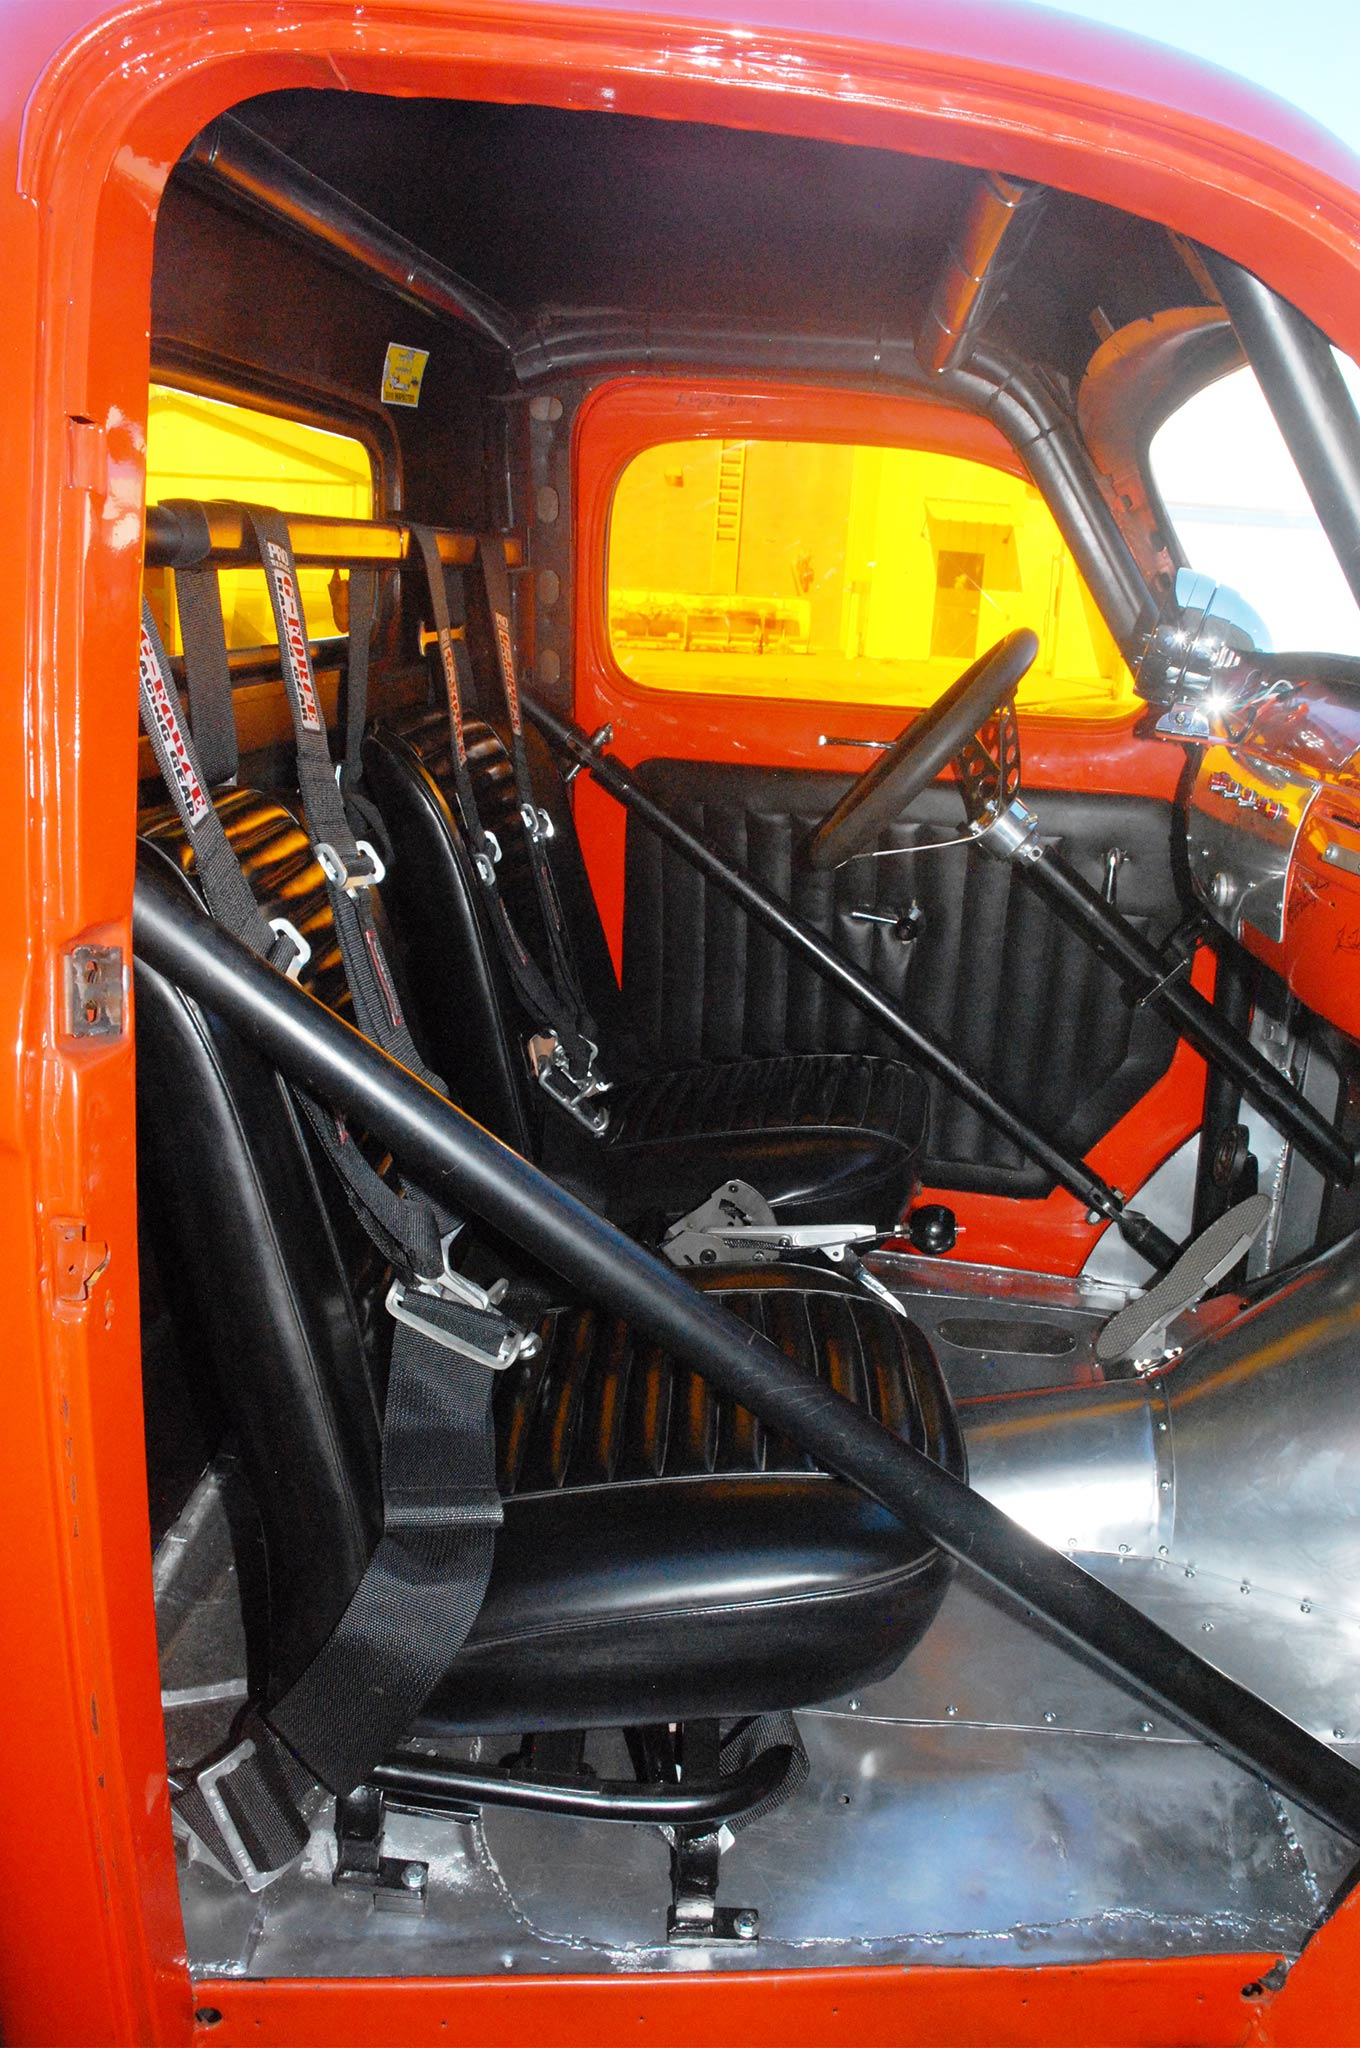 For being so cramped, it's amazingly comfortable inside. The Hairy Hauler is equipped with a six-point rollcage with swing-out driver-side bar, a pair of black vinyl seats, G-Force Racing Gear safety harnesses, Stewart Warner instruments, a Hurst Quarter Stick with Hurst Line Loc, orange Plexiglas windows, and aluminum interior paneling. The 'cage and tinwork were done by Jim Horvatis.